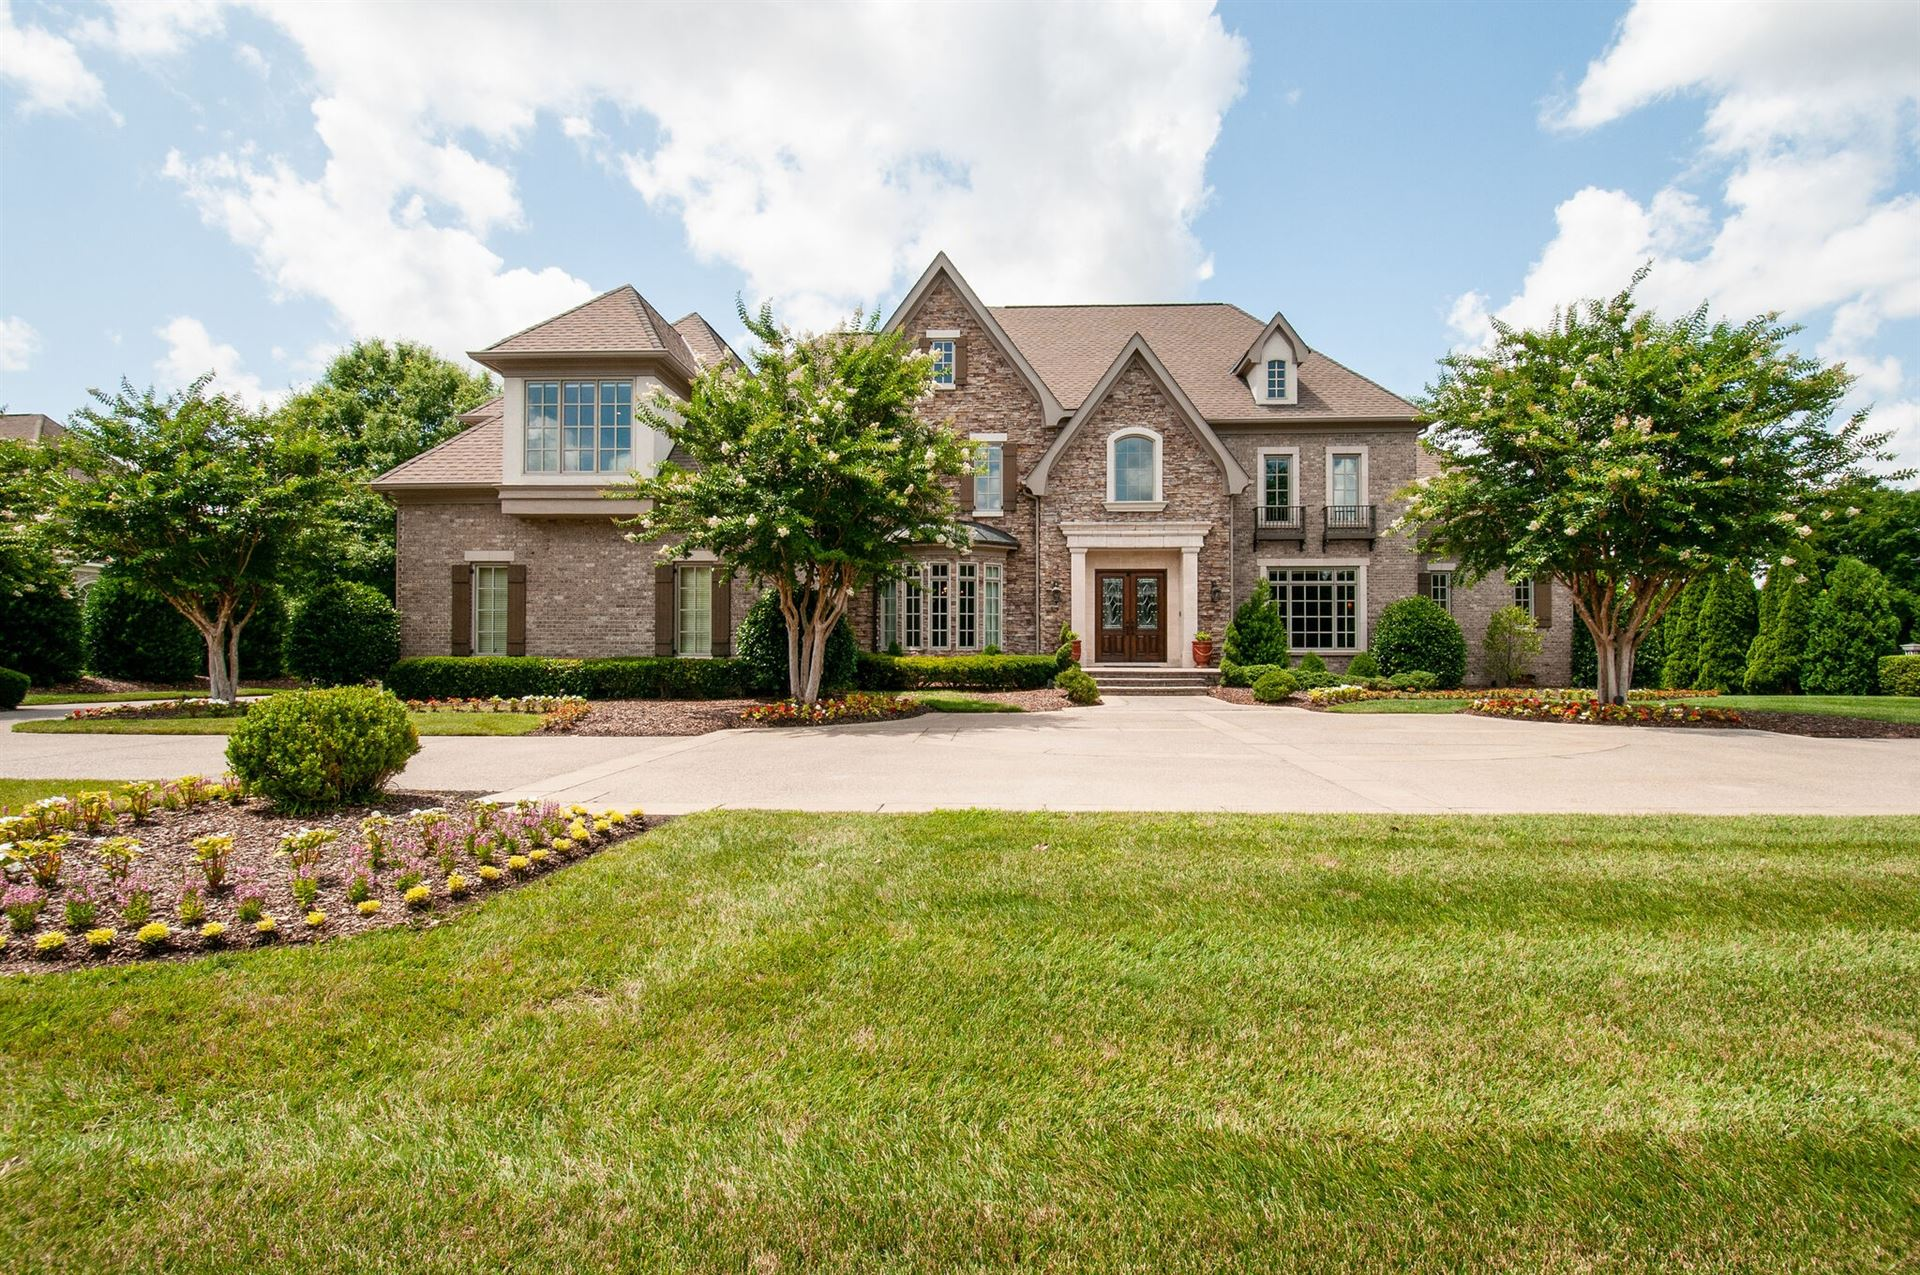 31 Governors Way, Brentwood, TN 37027 - MLS#: 2272007